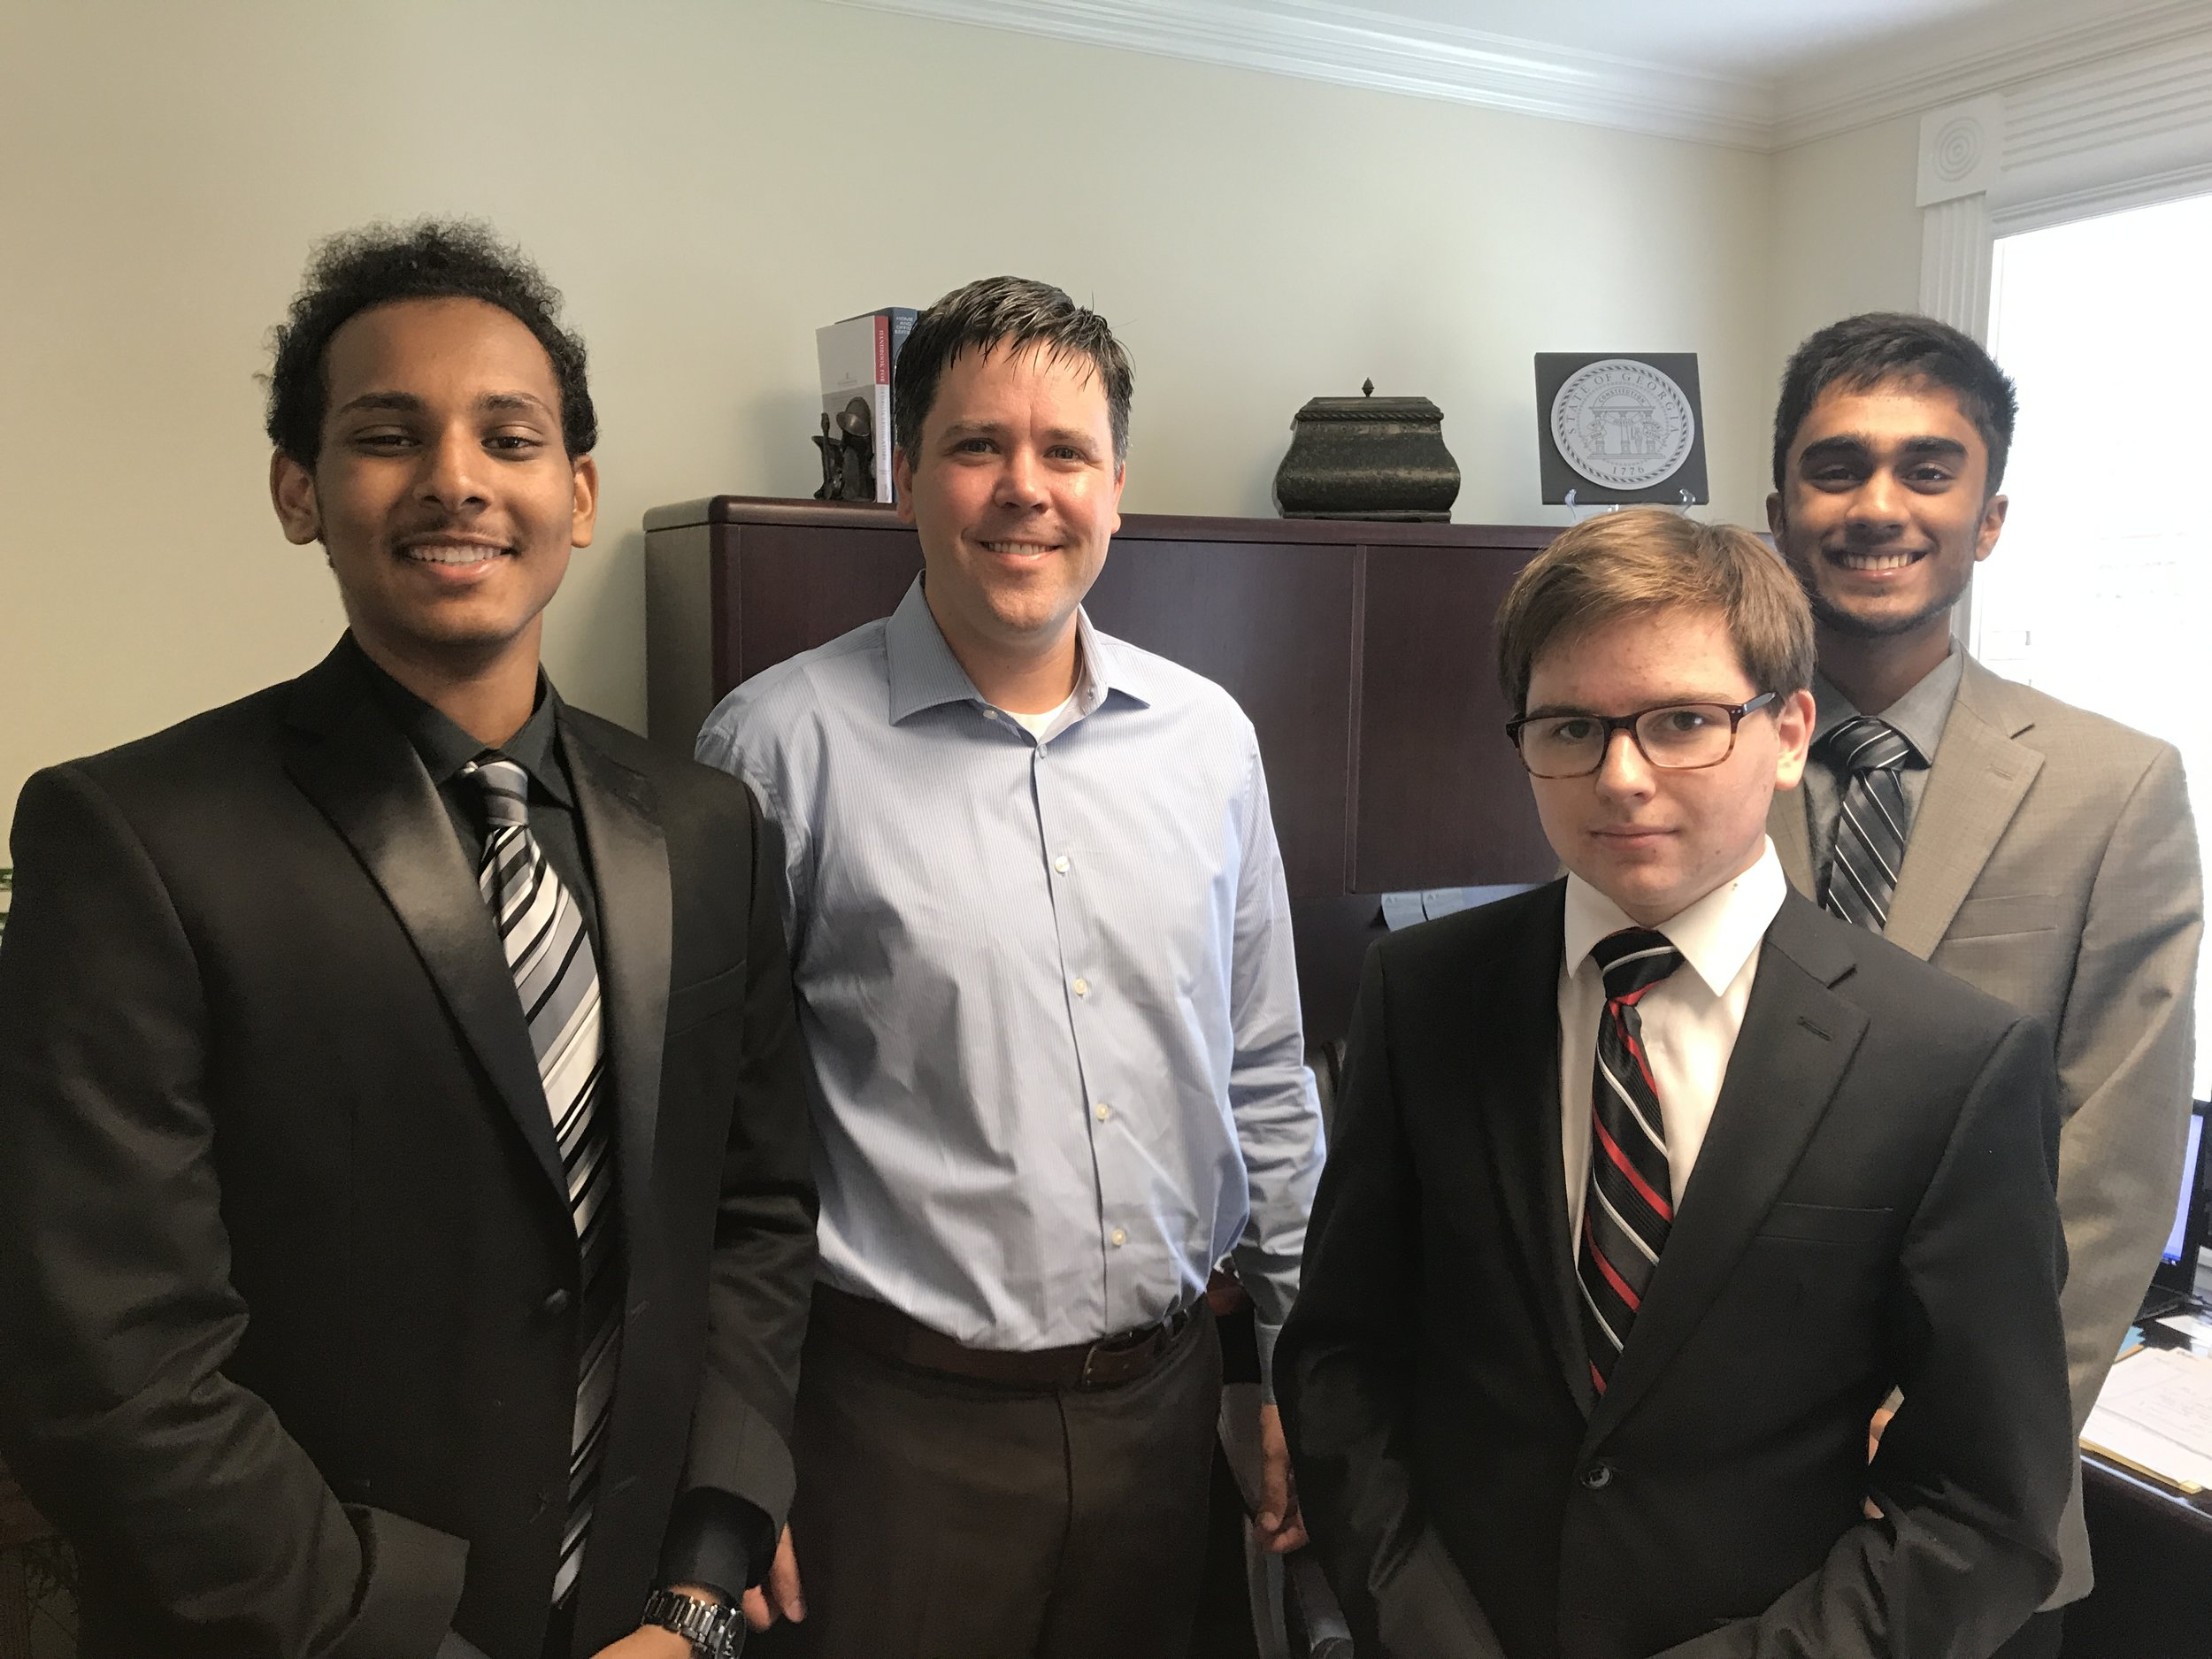 Meeting with PK Martin (State Senator and with Hood Insurance)